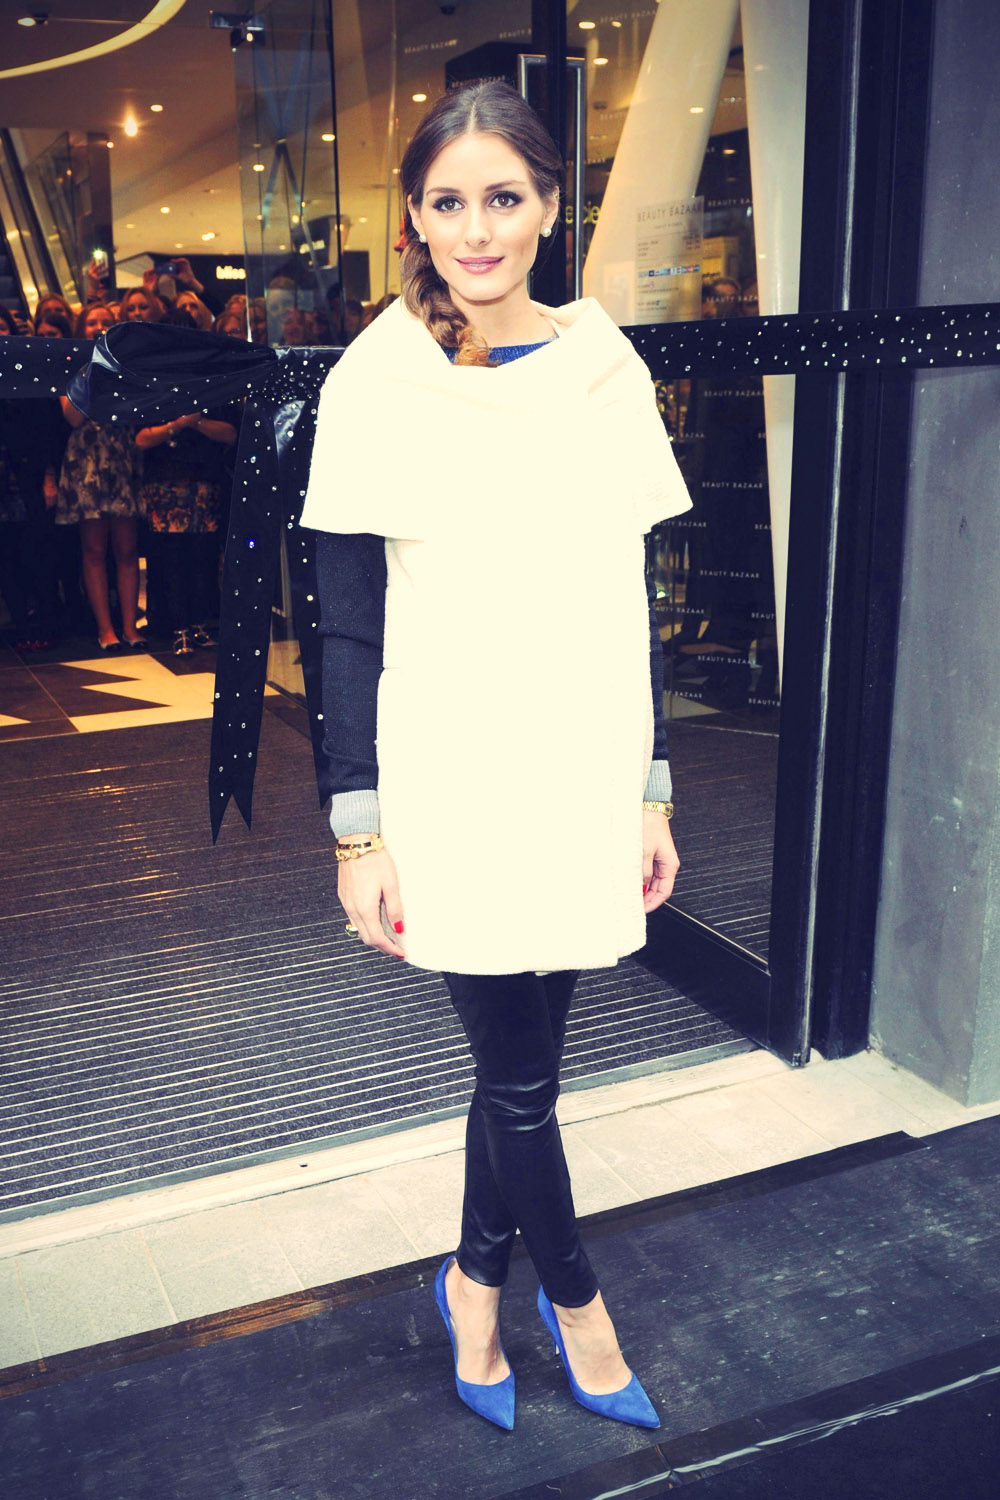 Olivia Palermo cut the ribbon to open the new Beauty Bazaar store